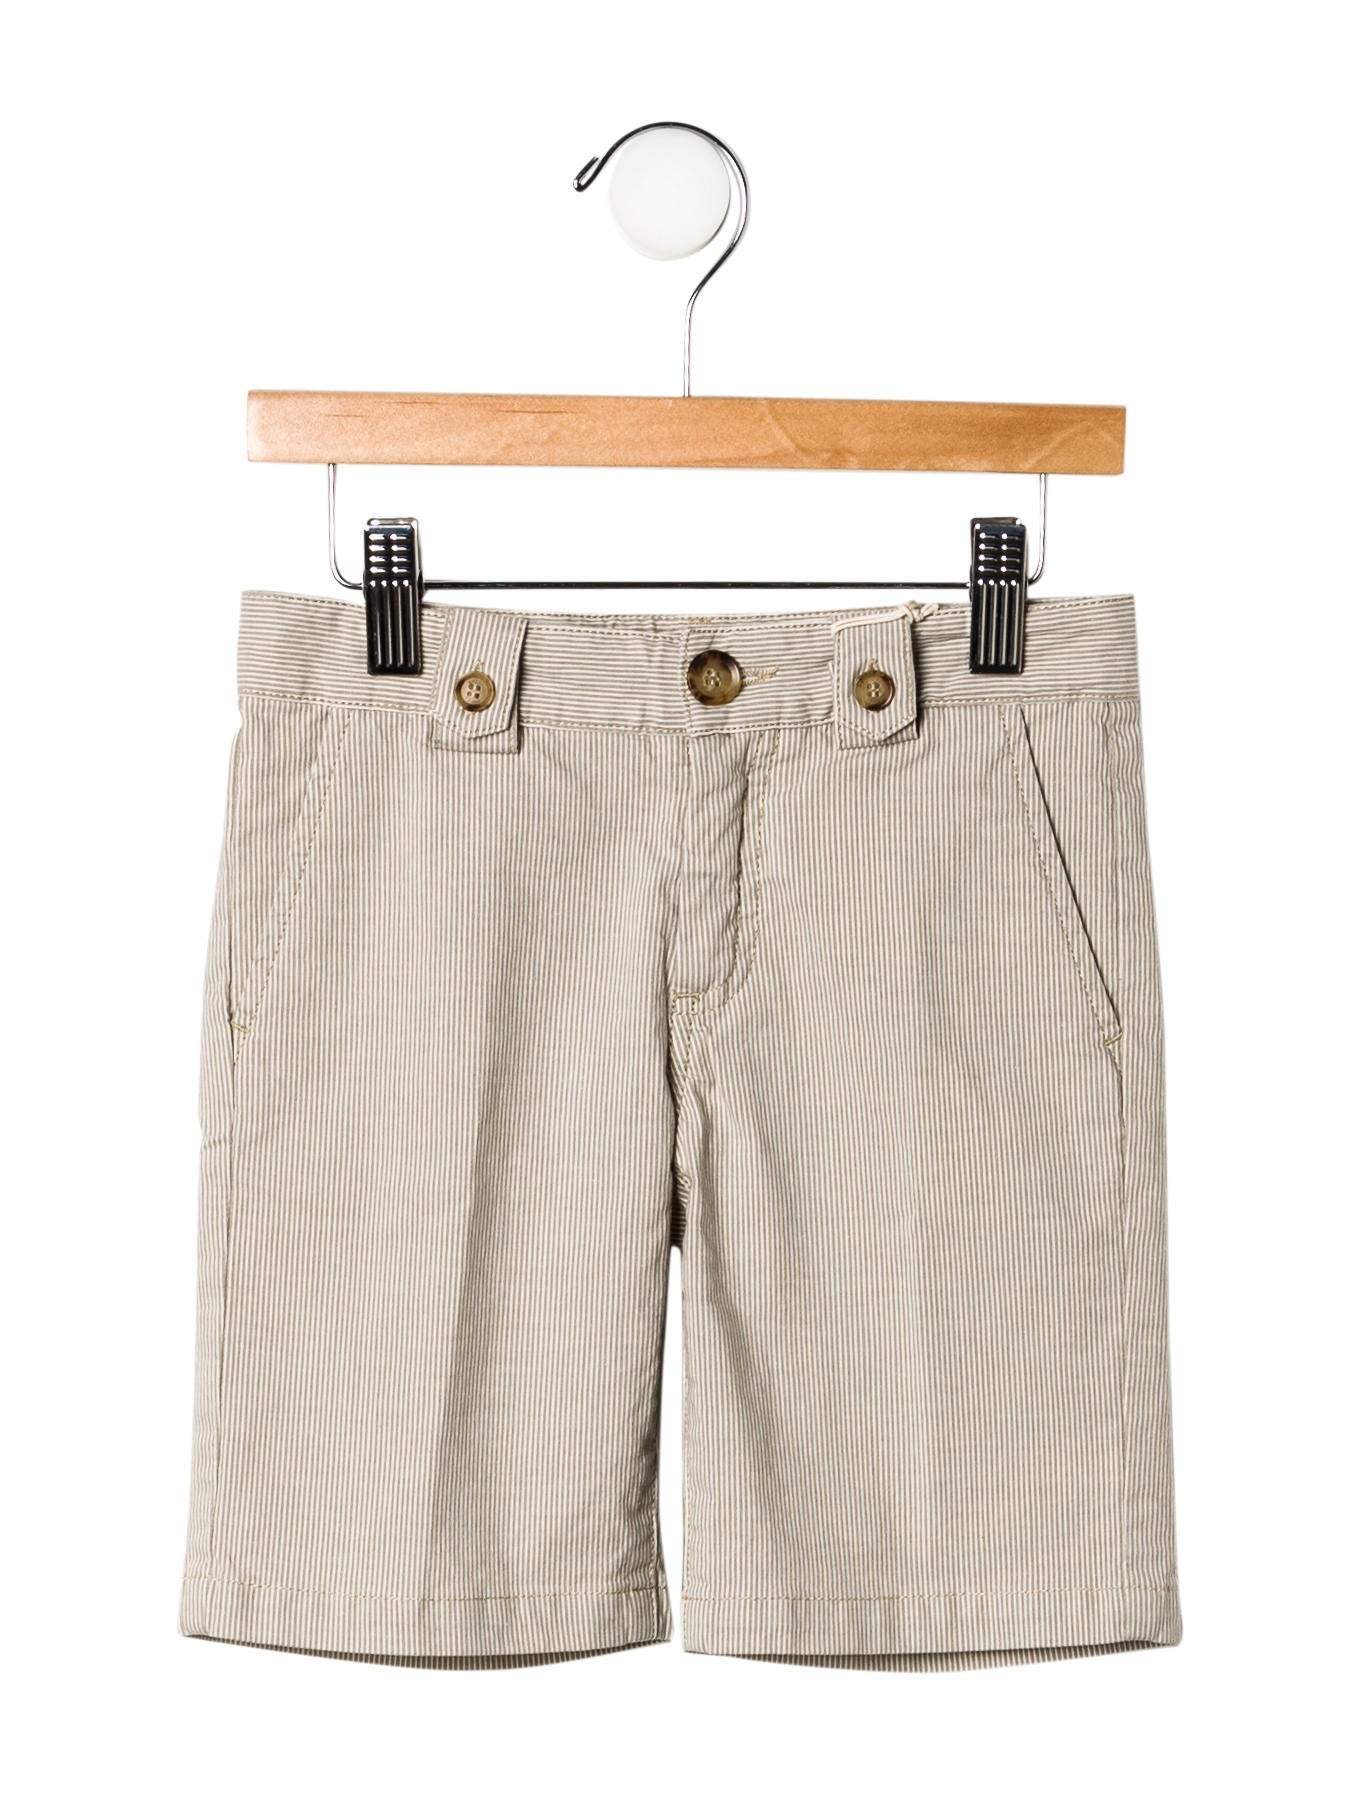 Boys' shorts complement active lifestyles. Whether your little explorers are adjusting to warming temperatures, enjoying summer break days at the park, or participating in year-round sports, various styles and materials keep boys of all ages comfortable.